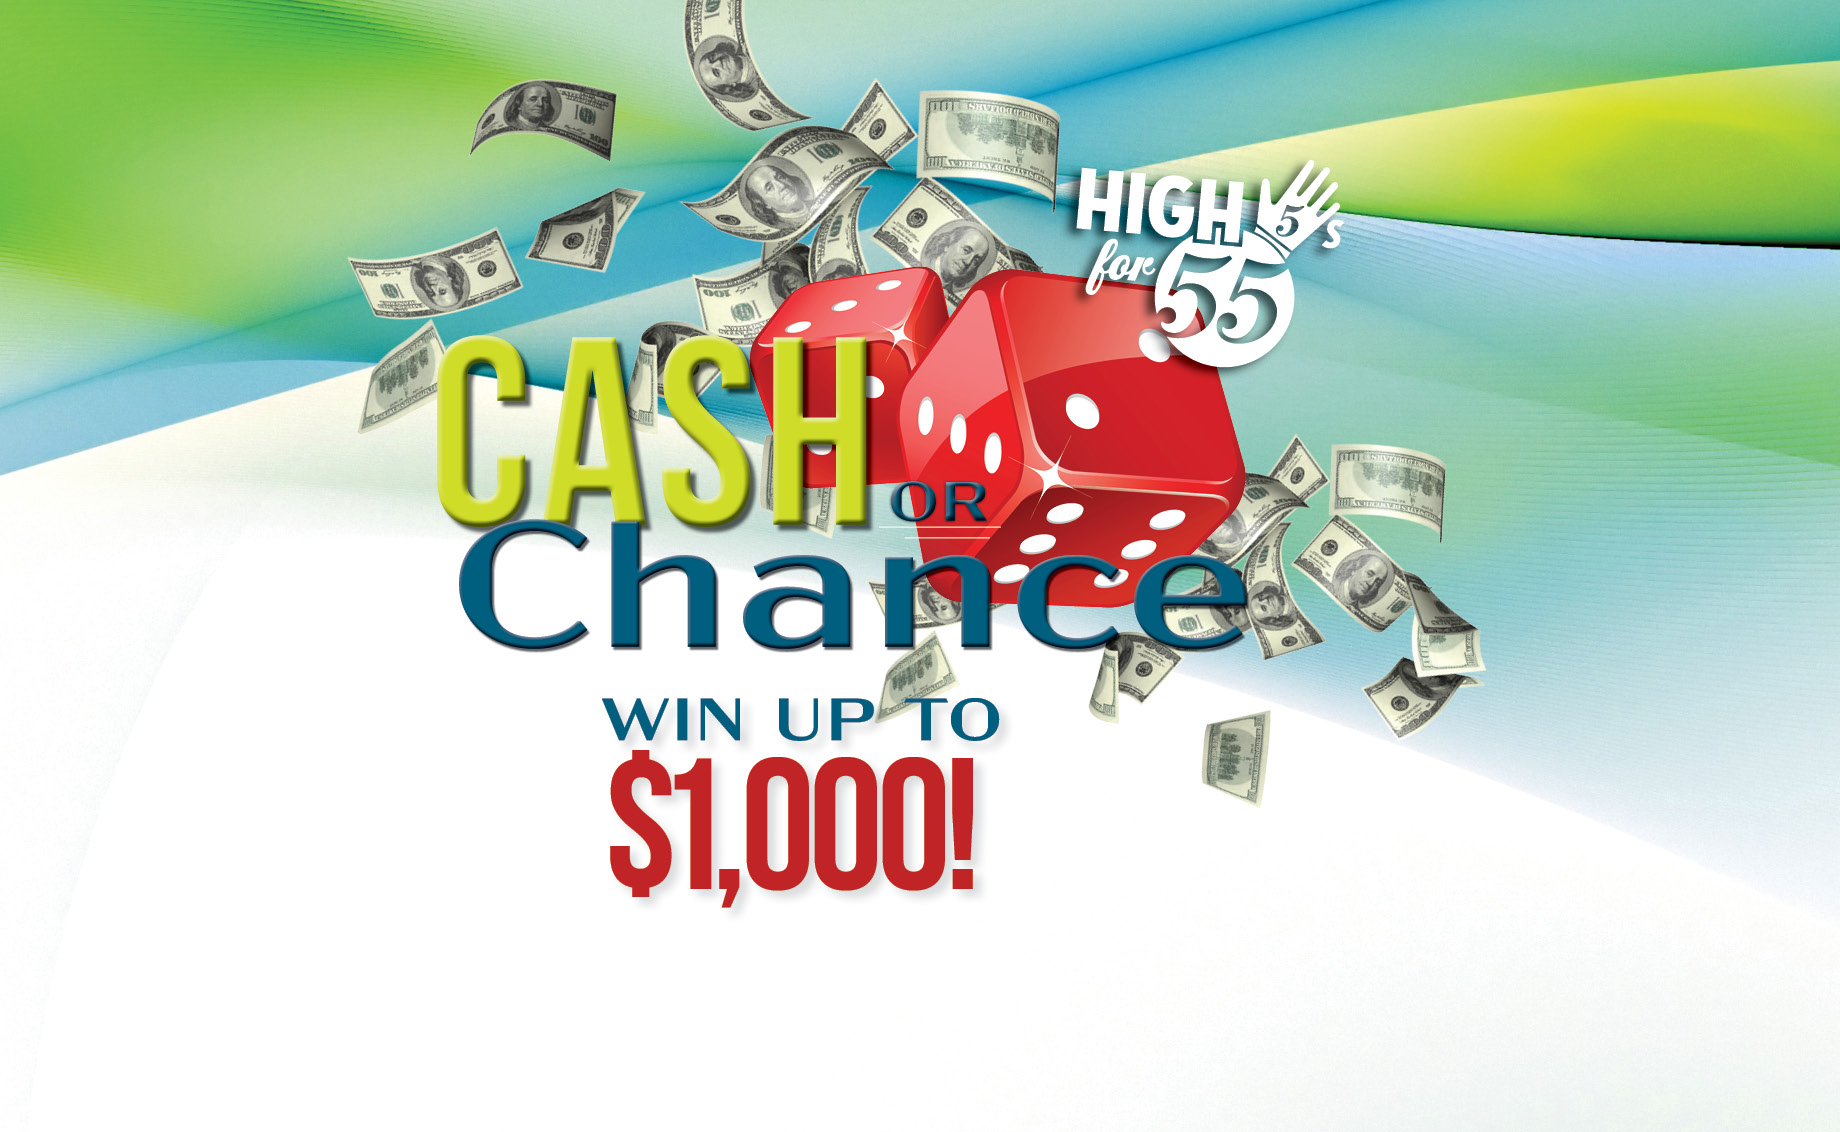 High 5's for 55 – Cash or Chance